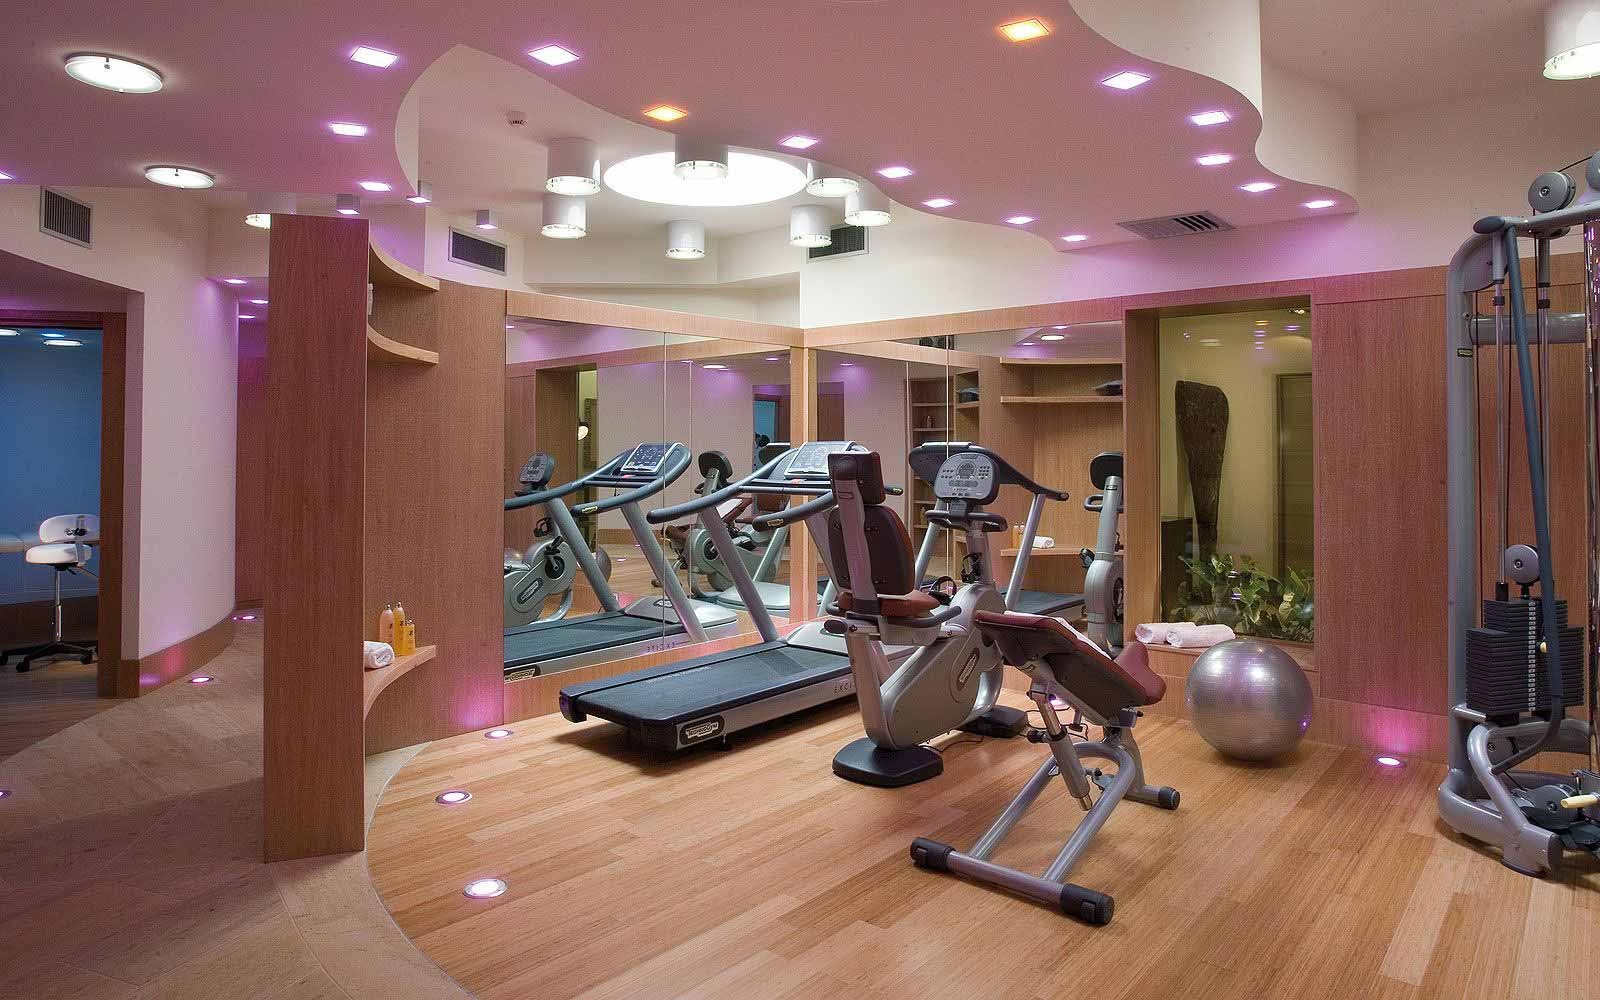 Gym at the L'Ea Bianca Luxury Resort